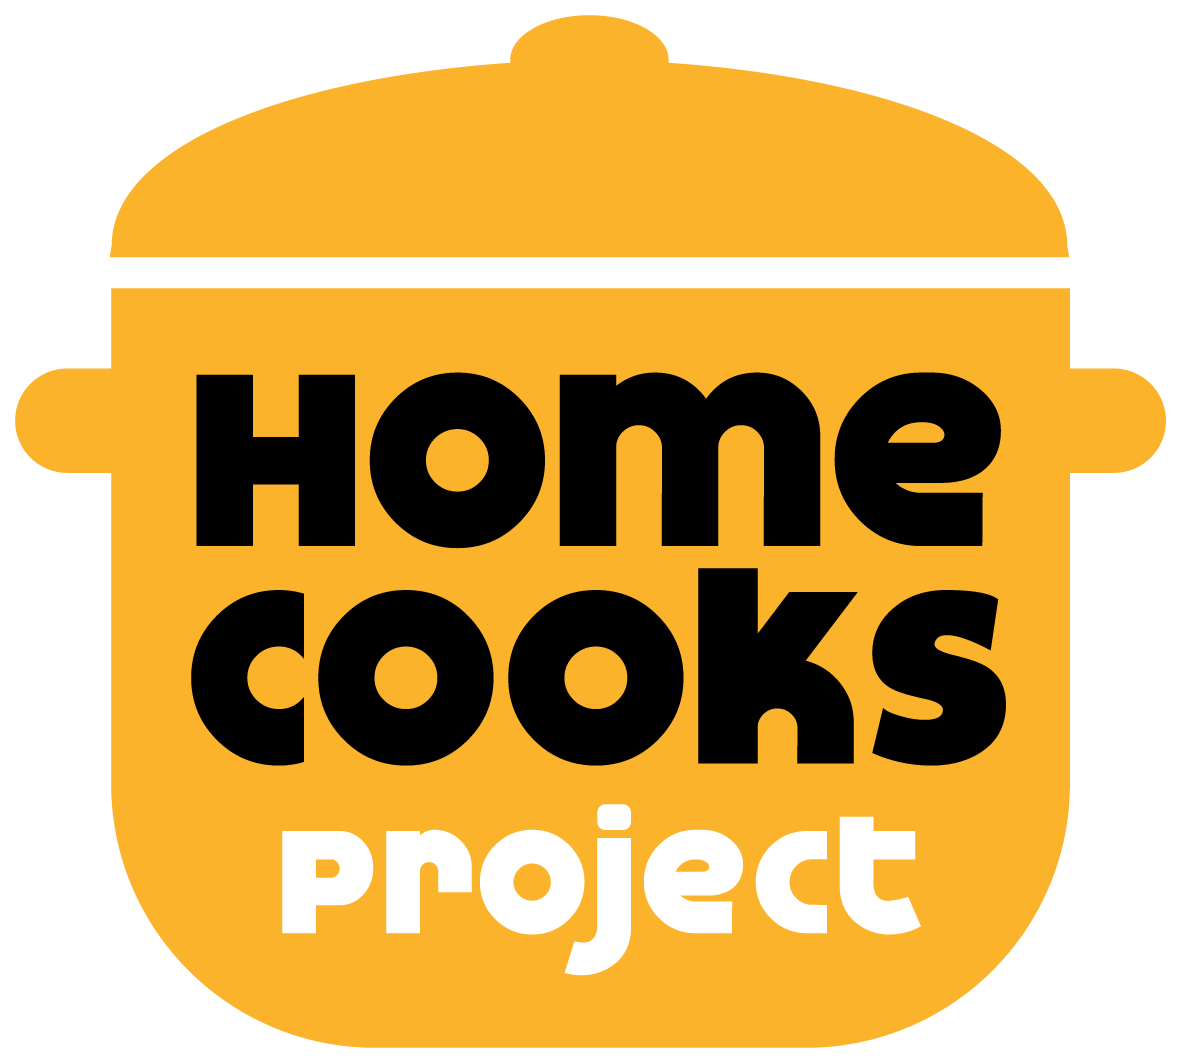 Home Cooks Project